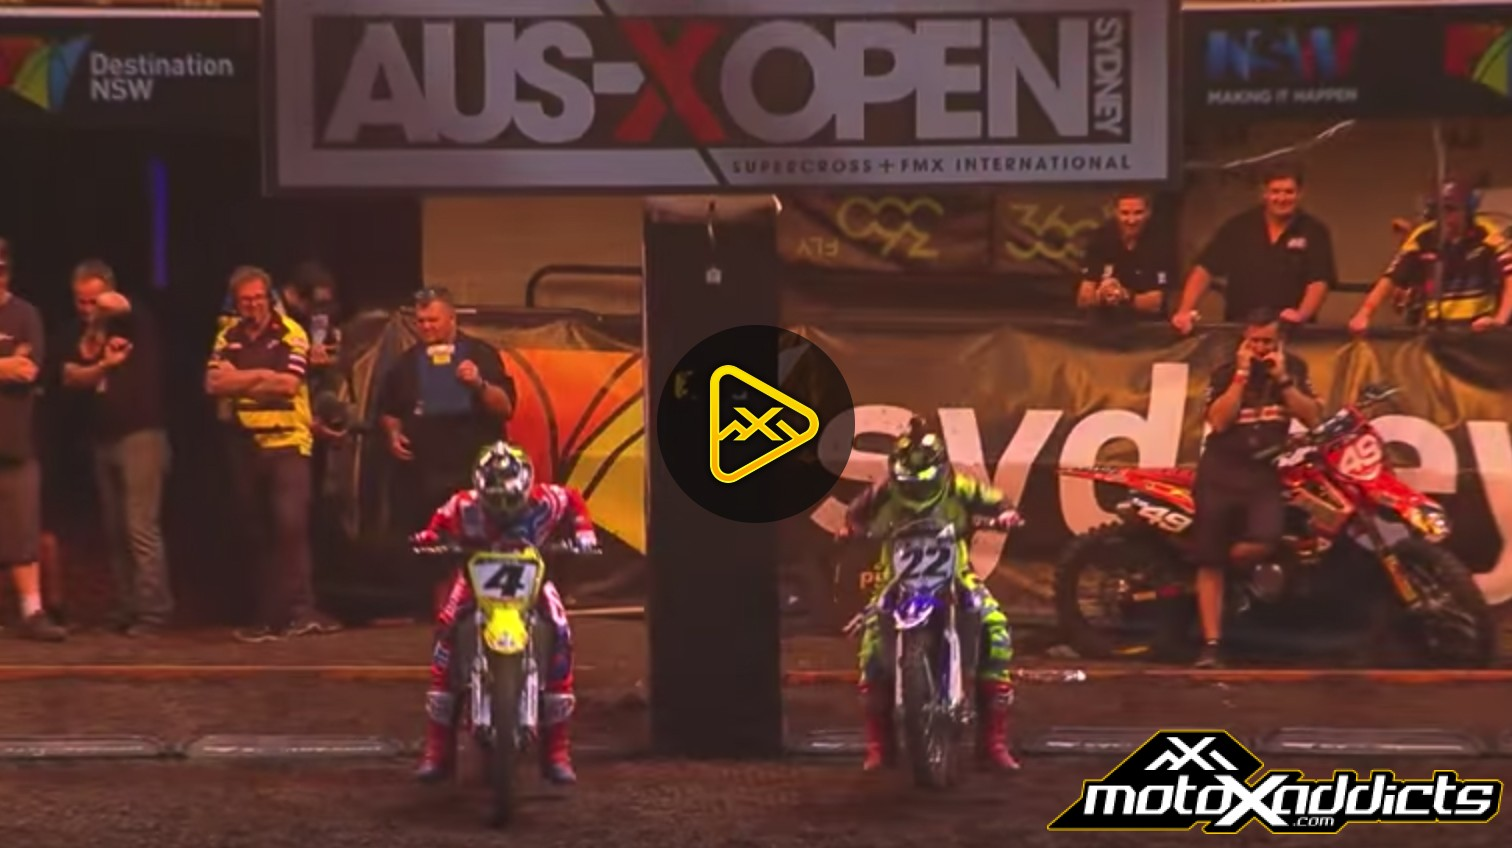 Flashback: Chad Reed vs Ricky Carmichael at AUS-X Open